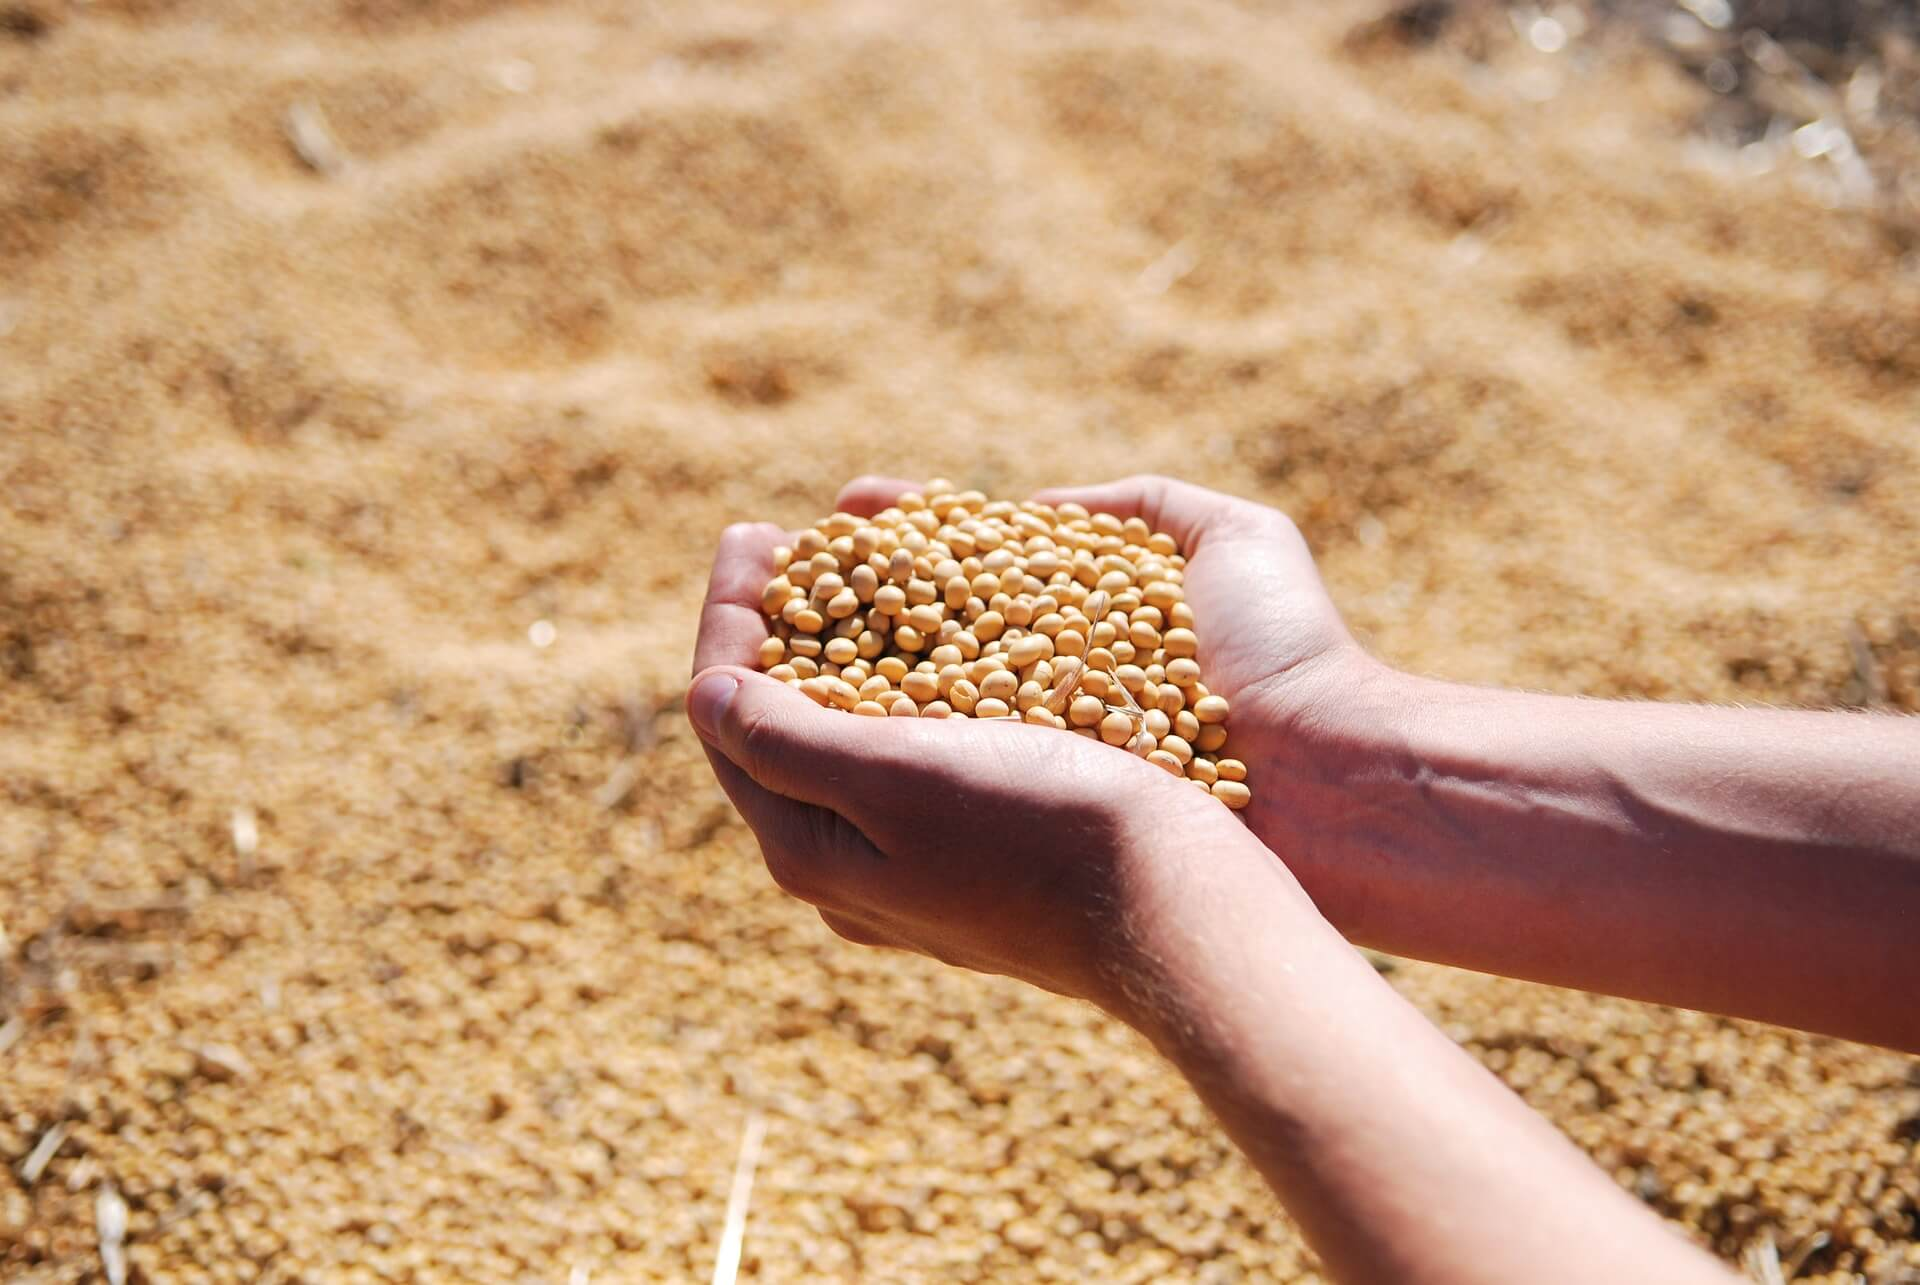 Private-soybeans-and-soybean-meal-production-estimates-show-possibly-strong-output